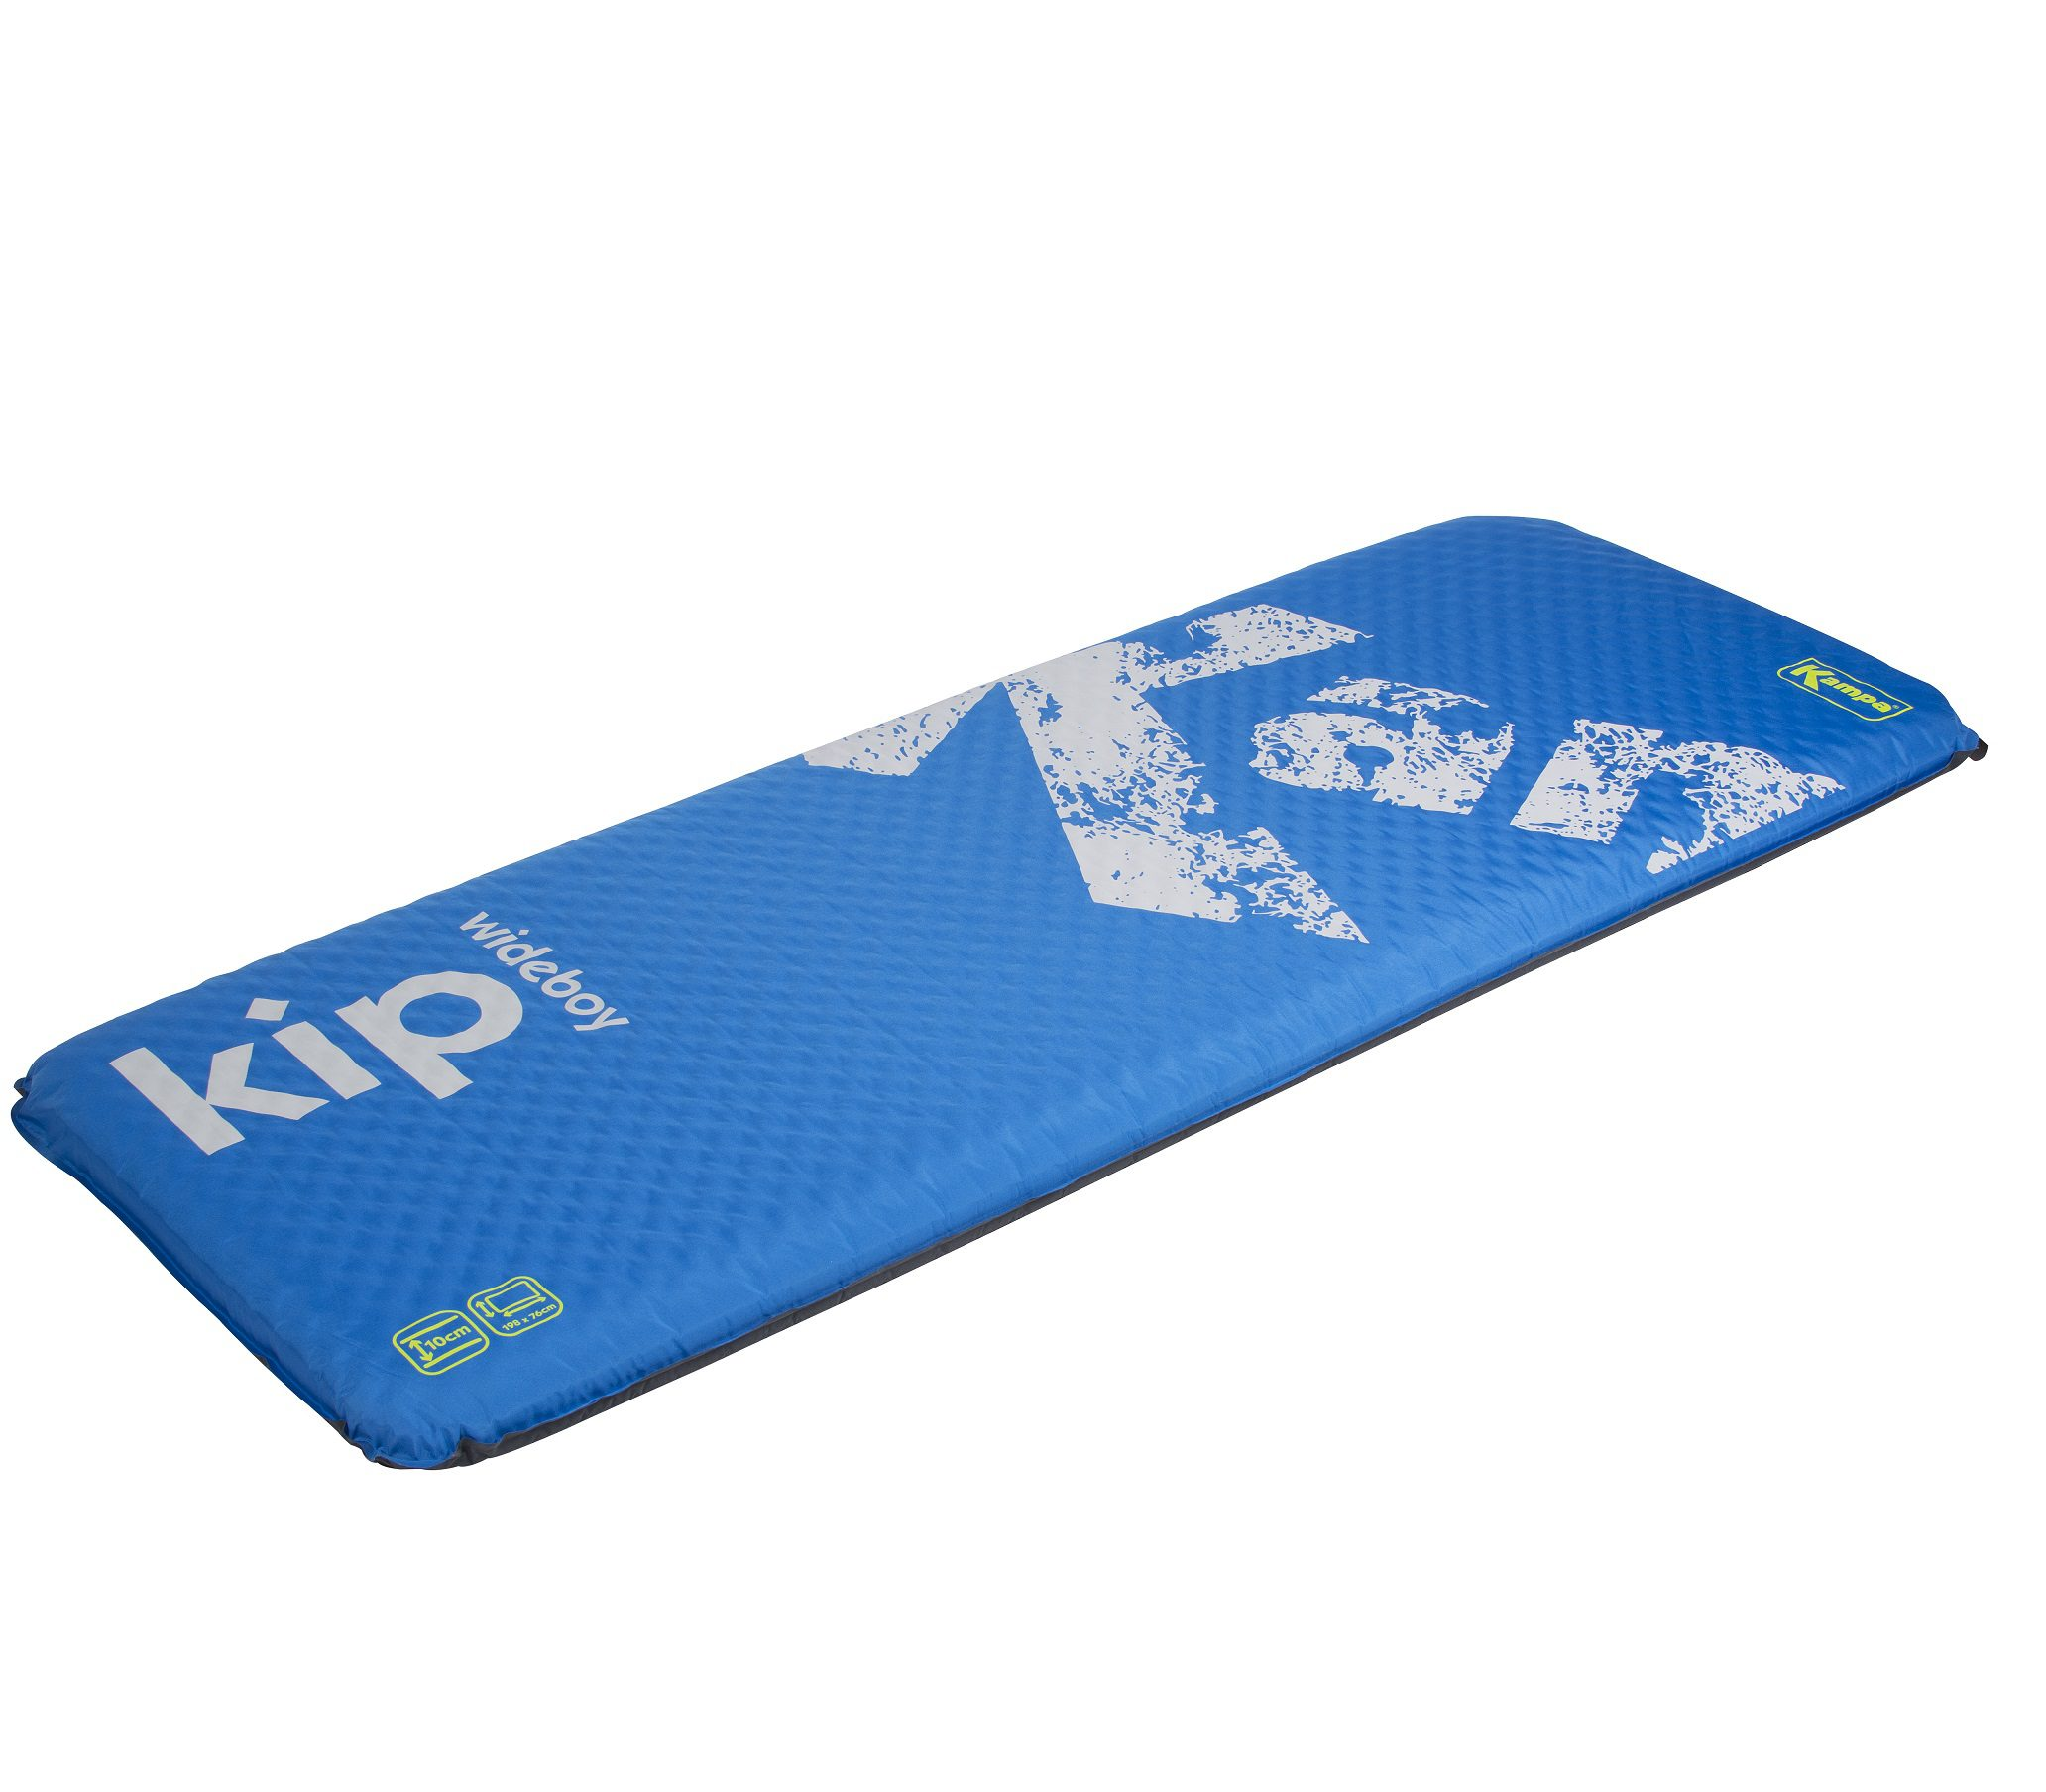 Kampa Kip Wideboy 10 Self Inflating Mattress - 335080